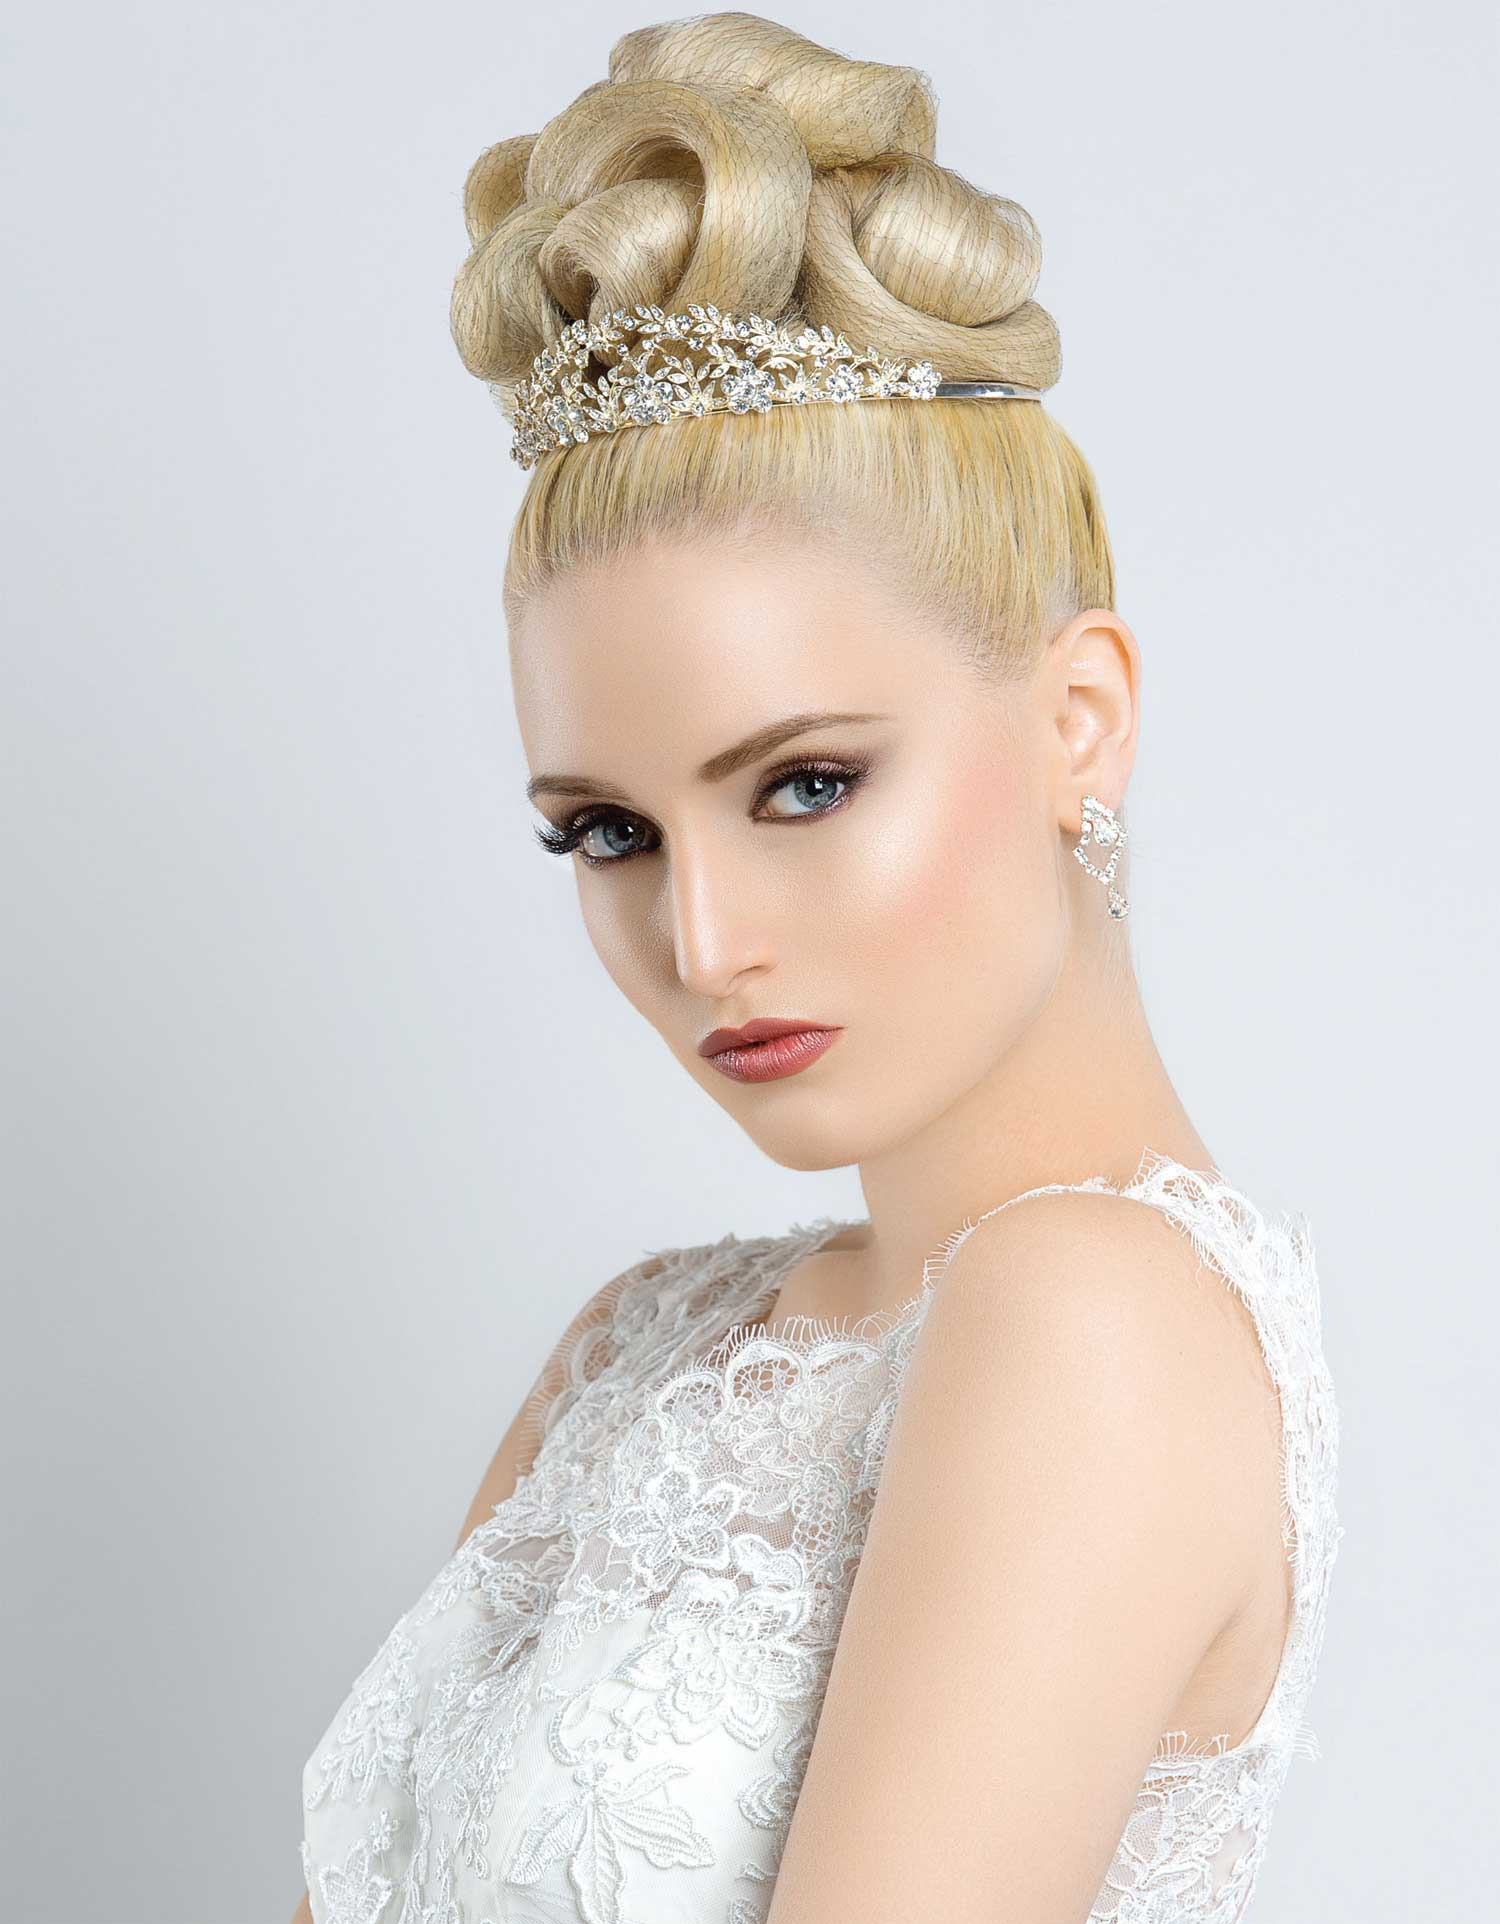 Netted Bridal Updo